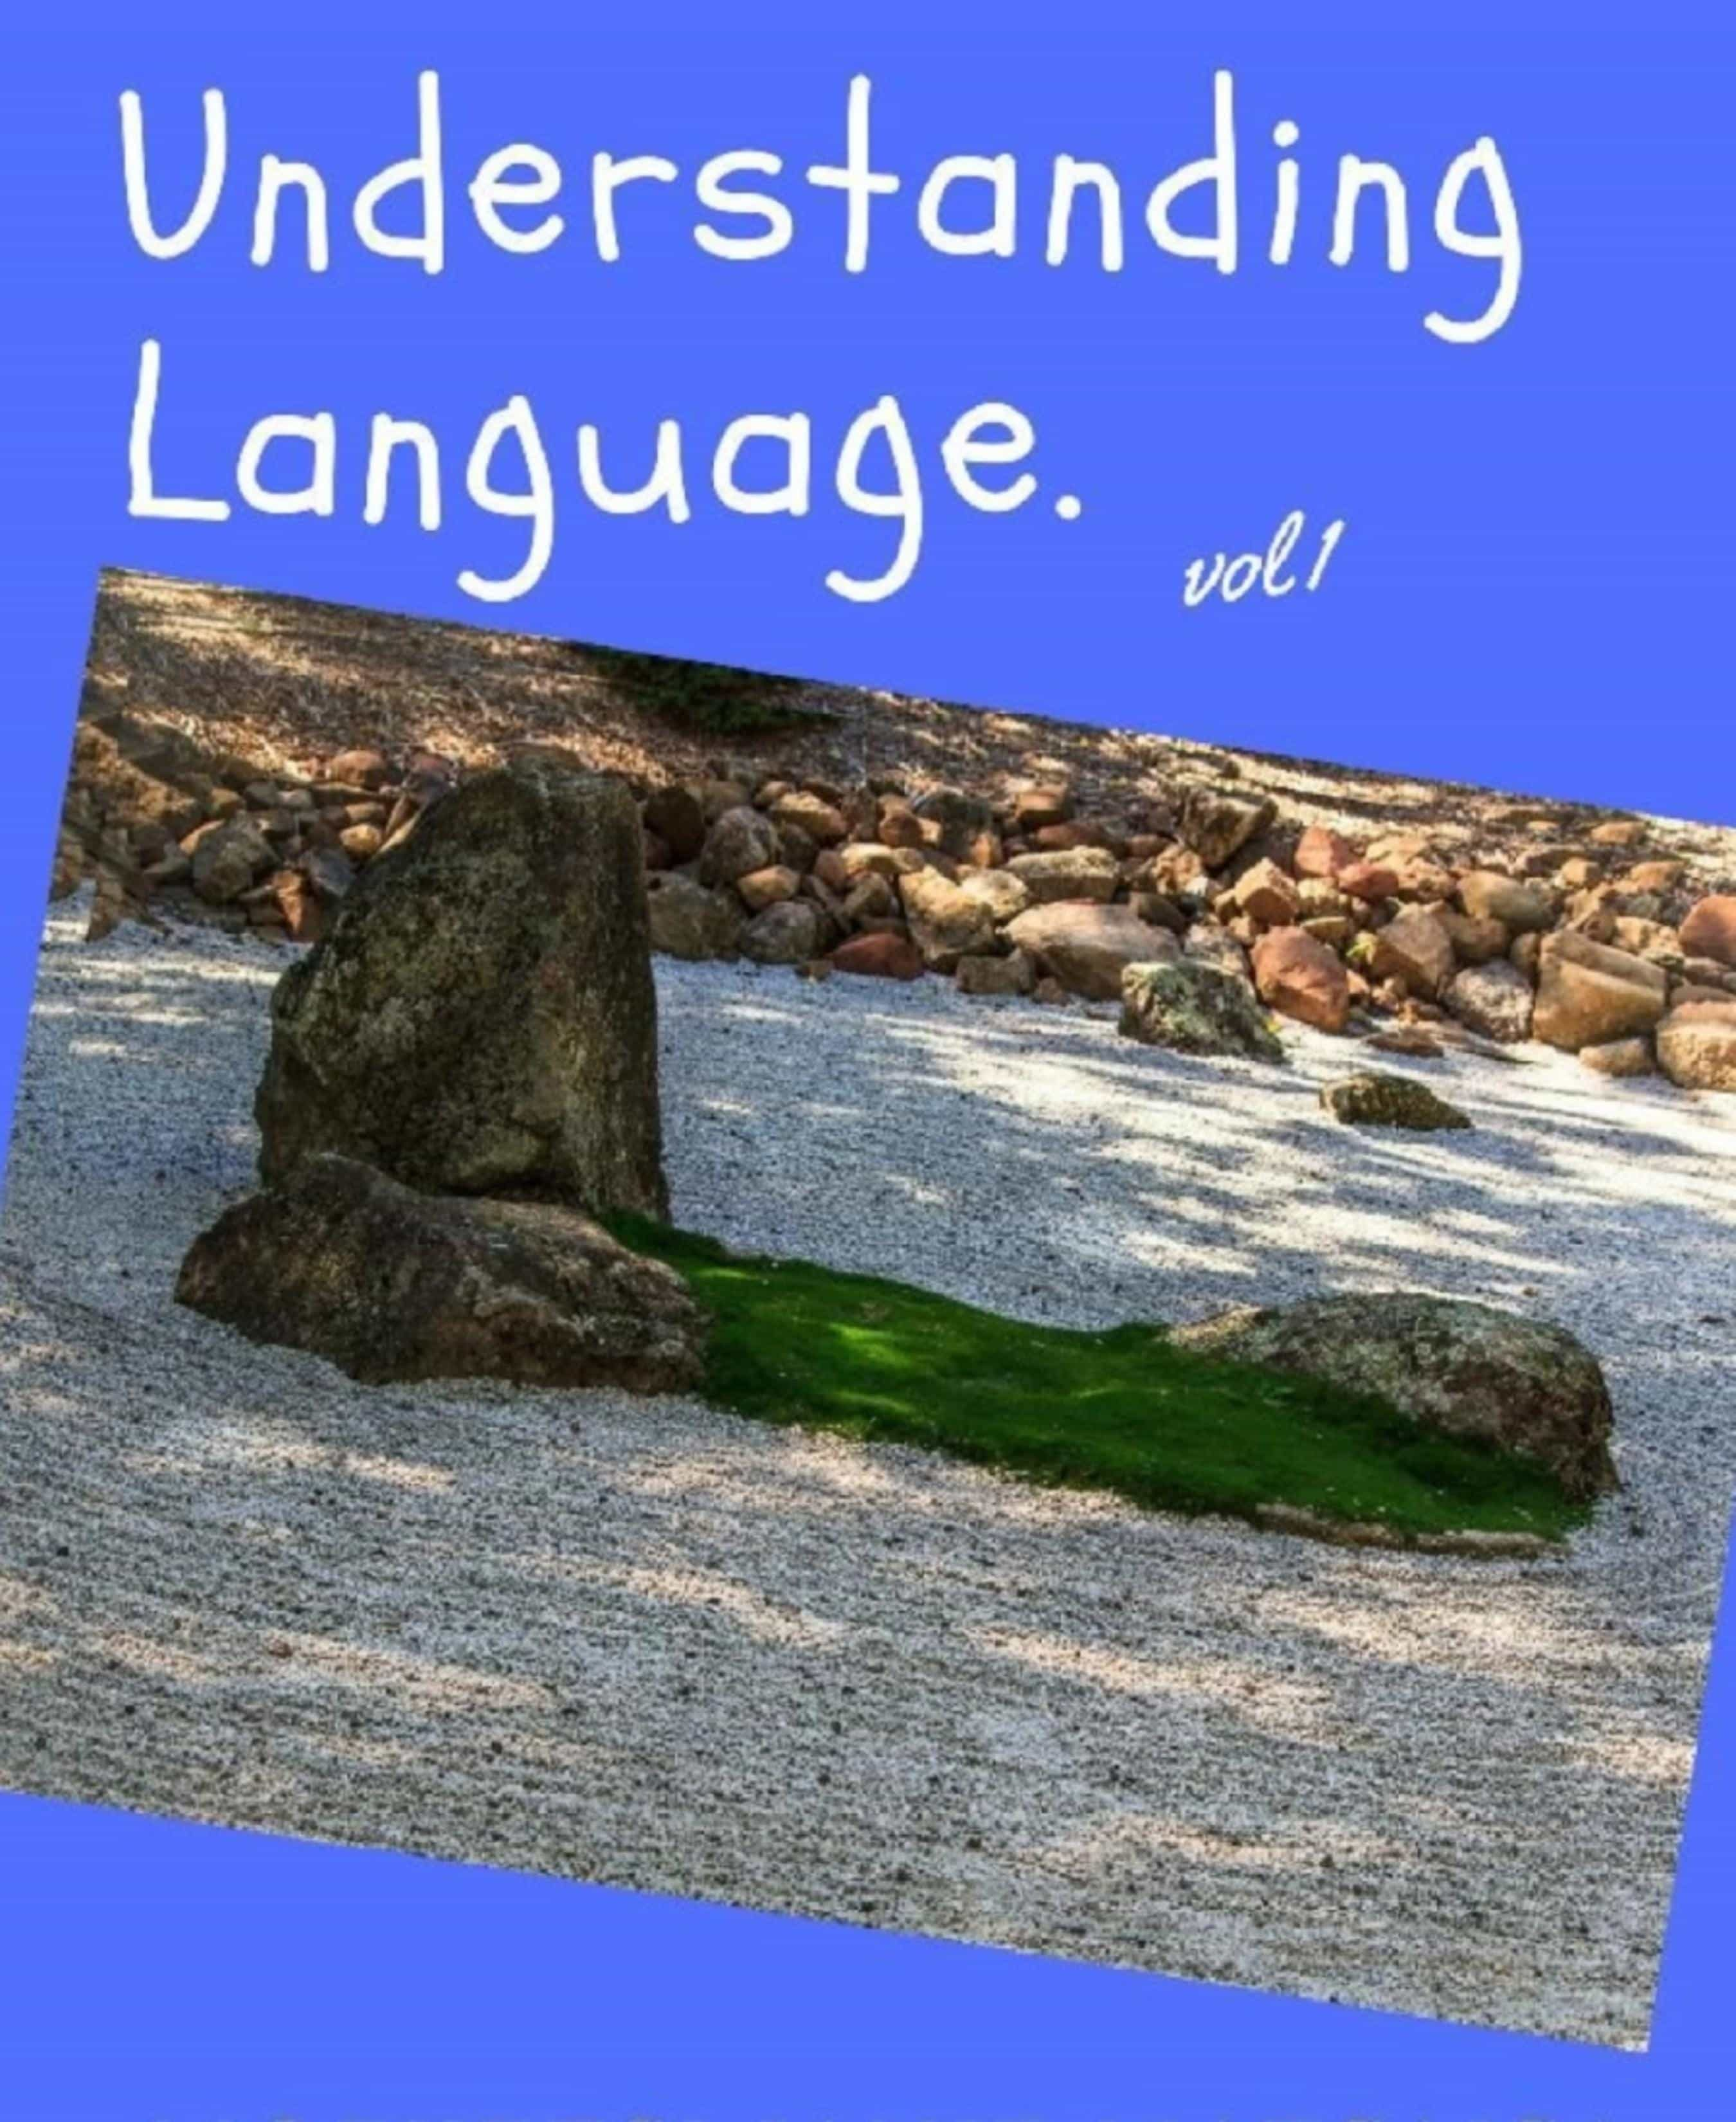 UNDERSTANDING LANGUAGE VOL 1